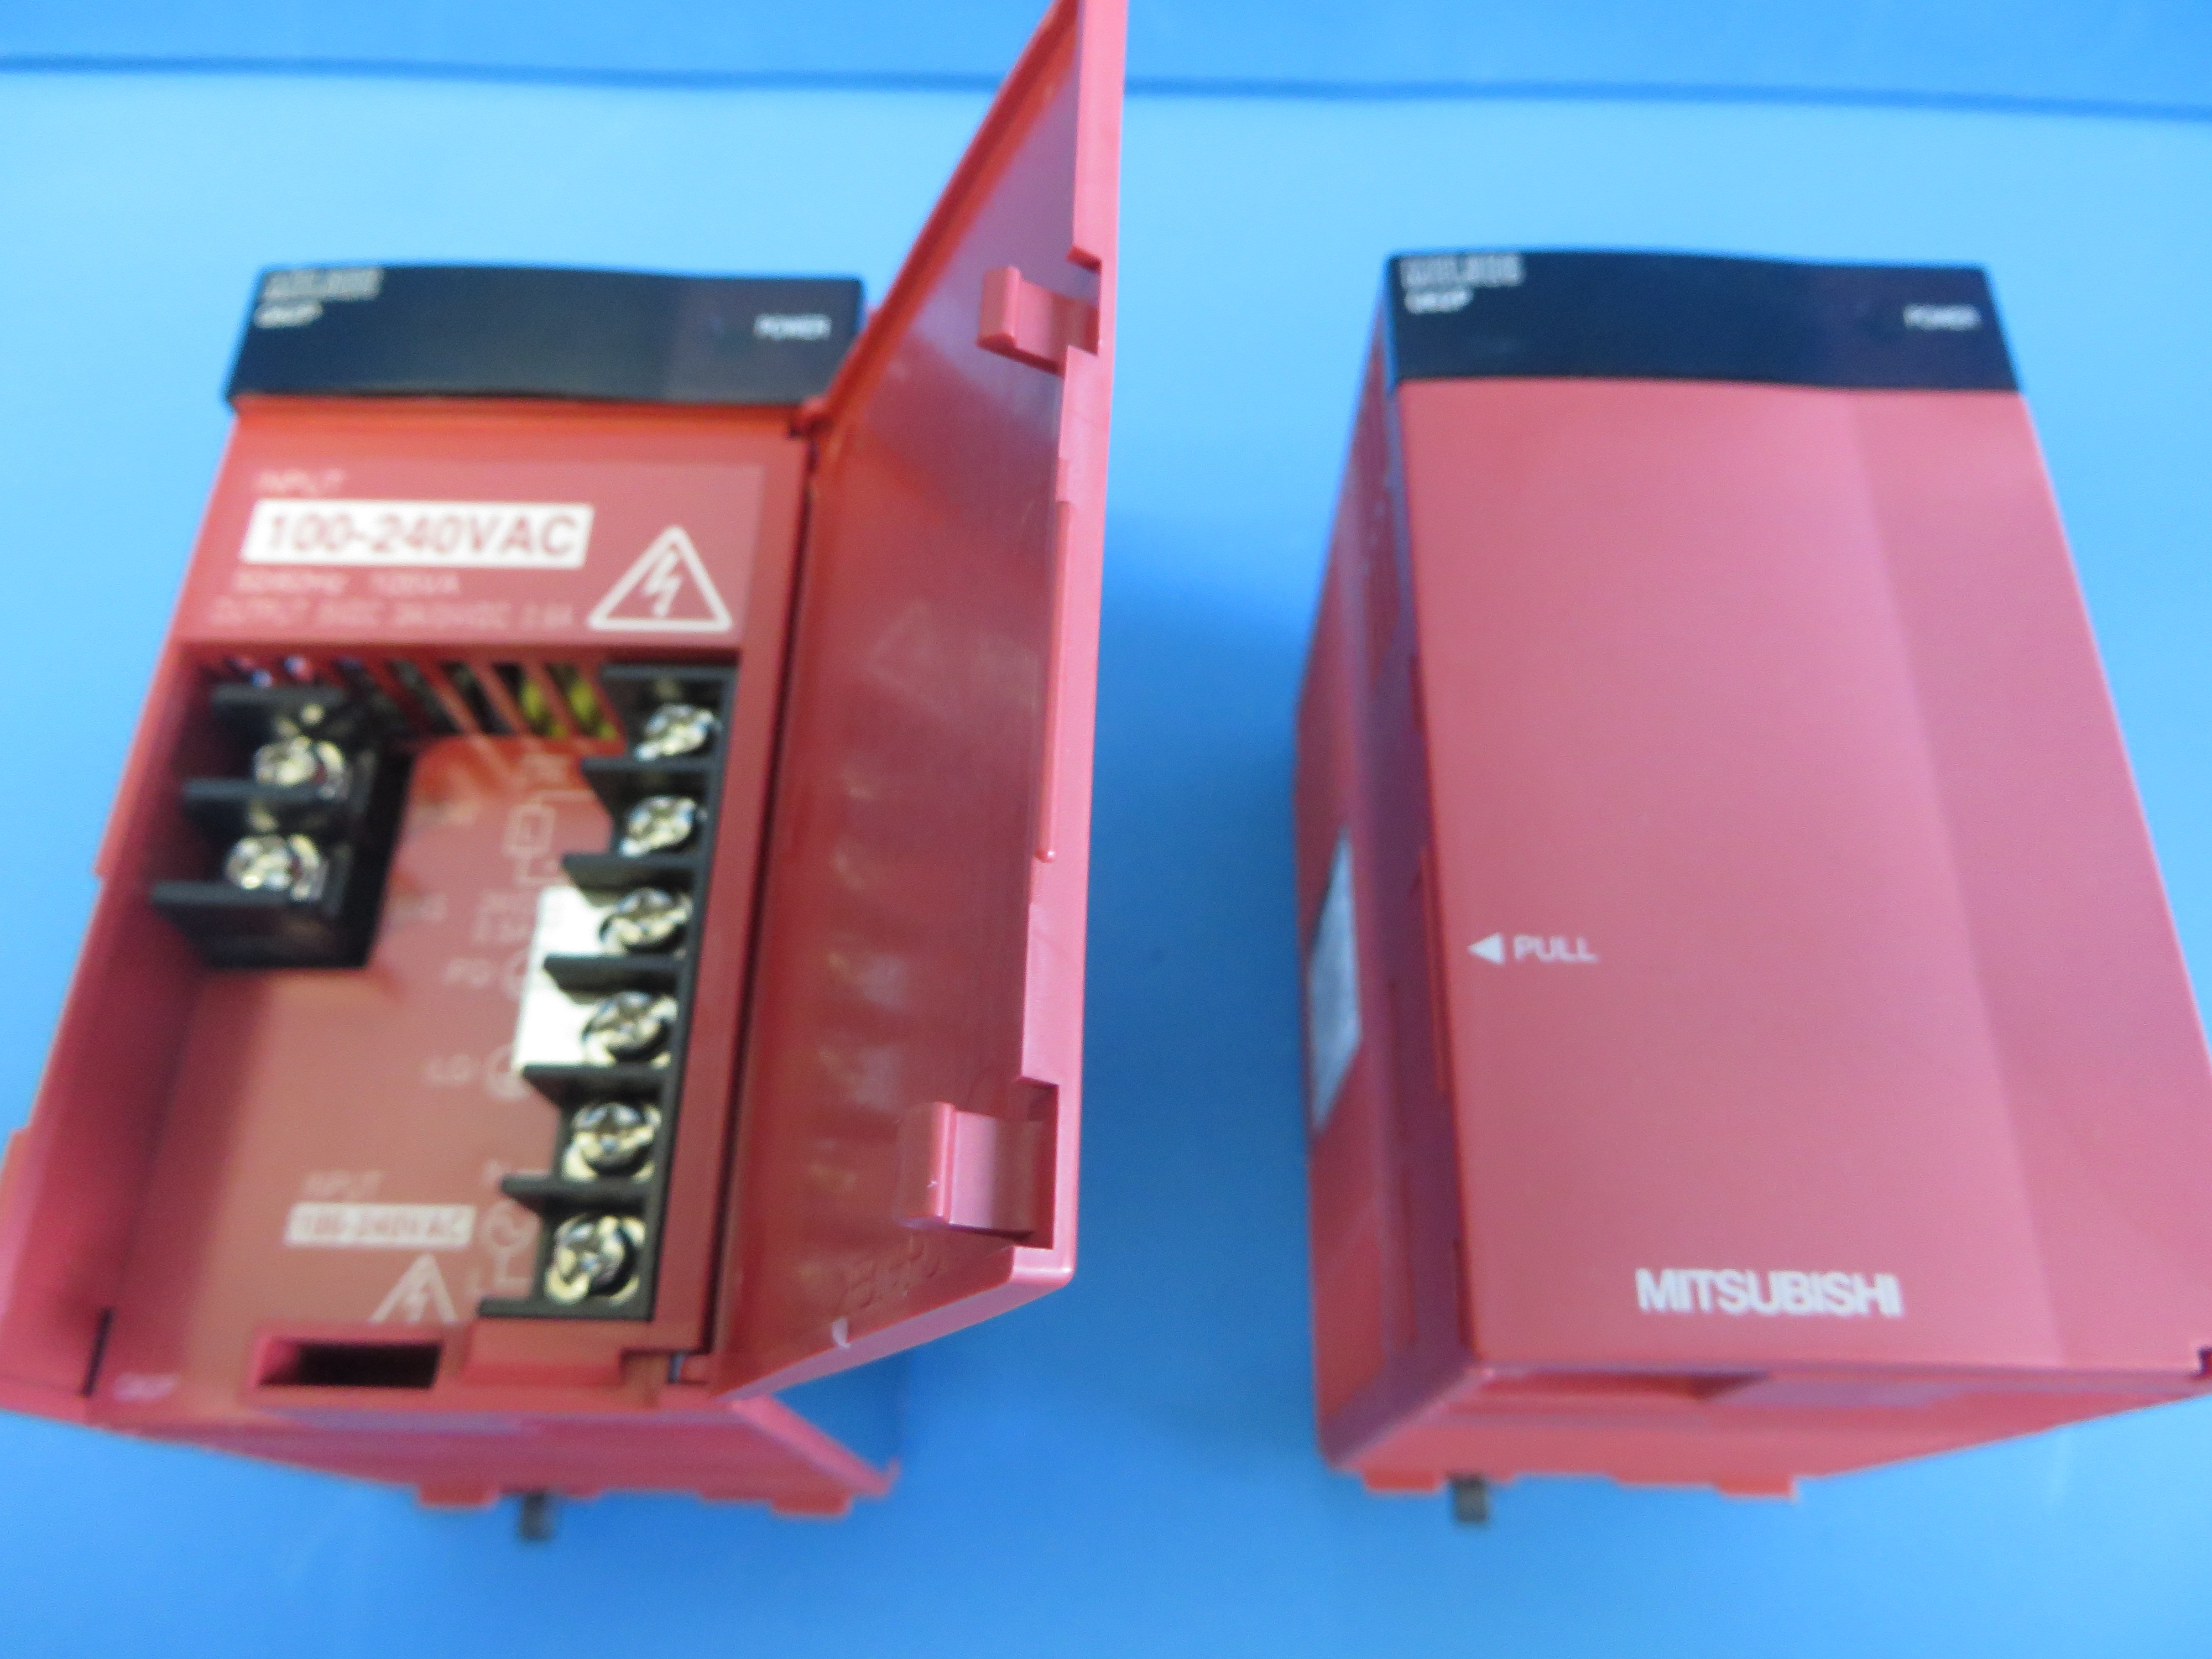 mitsubishi q62p power supply lot of 2 power supplies browse